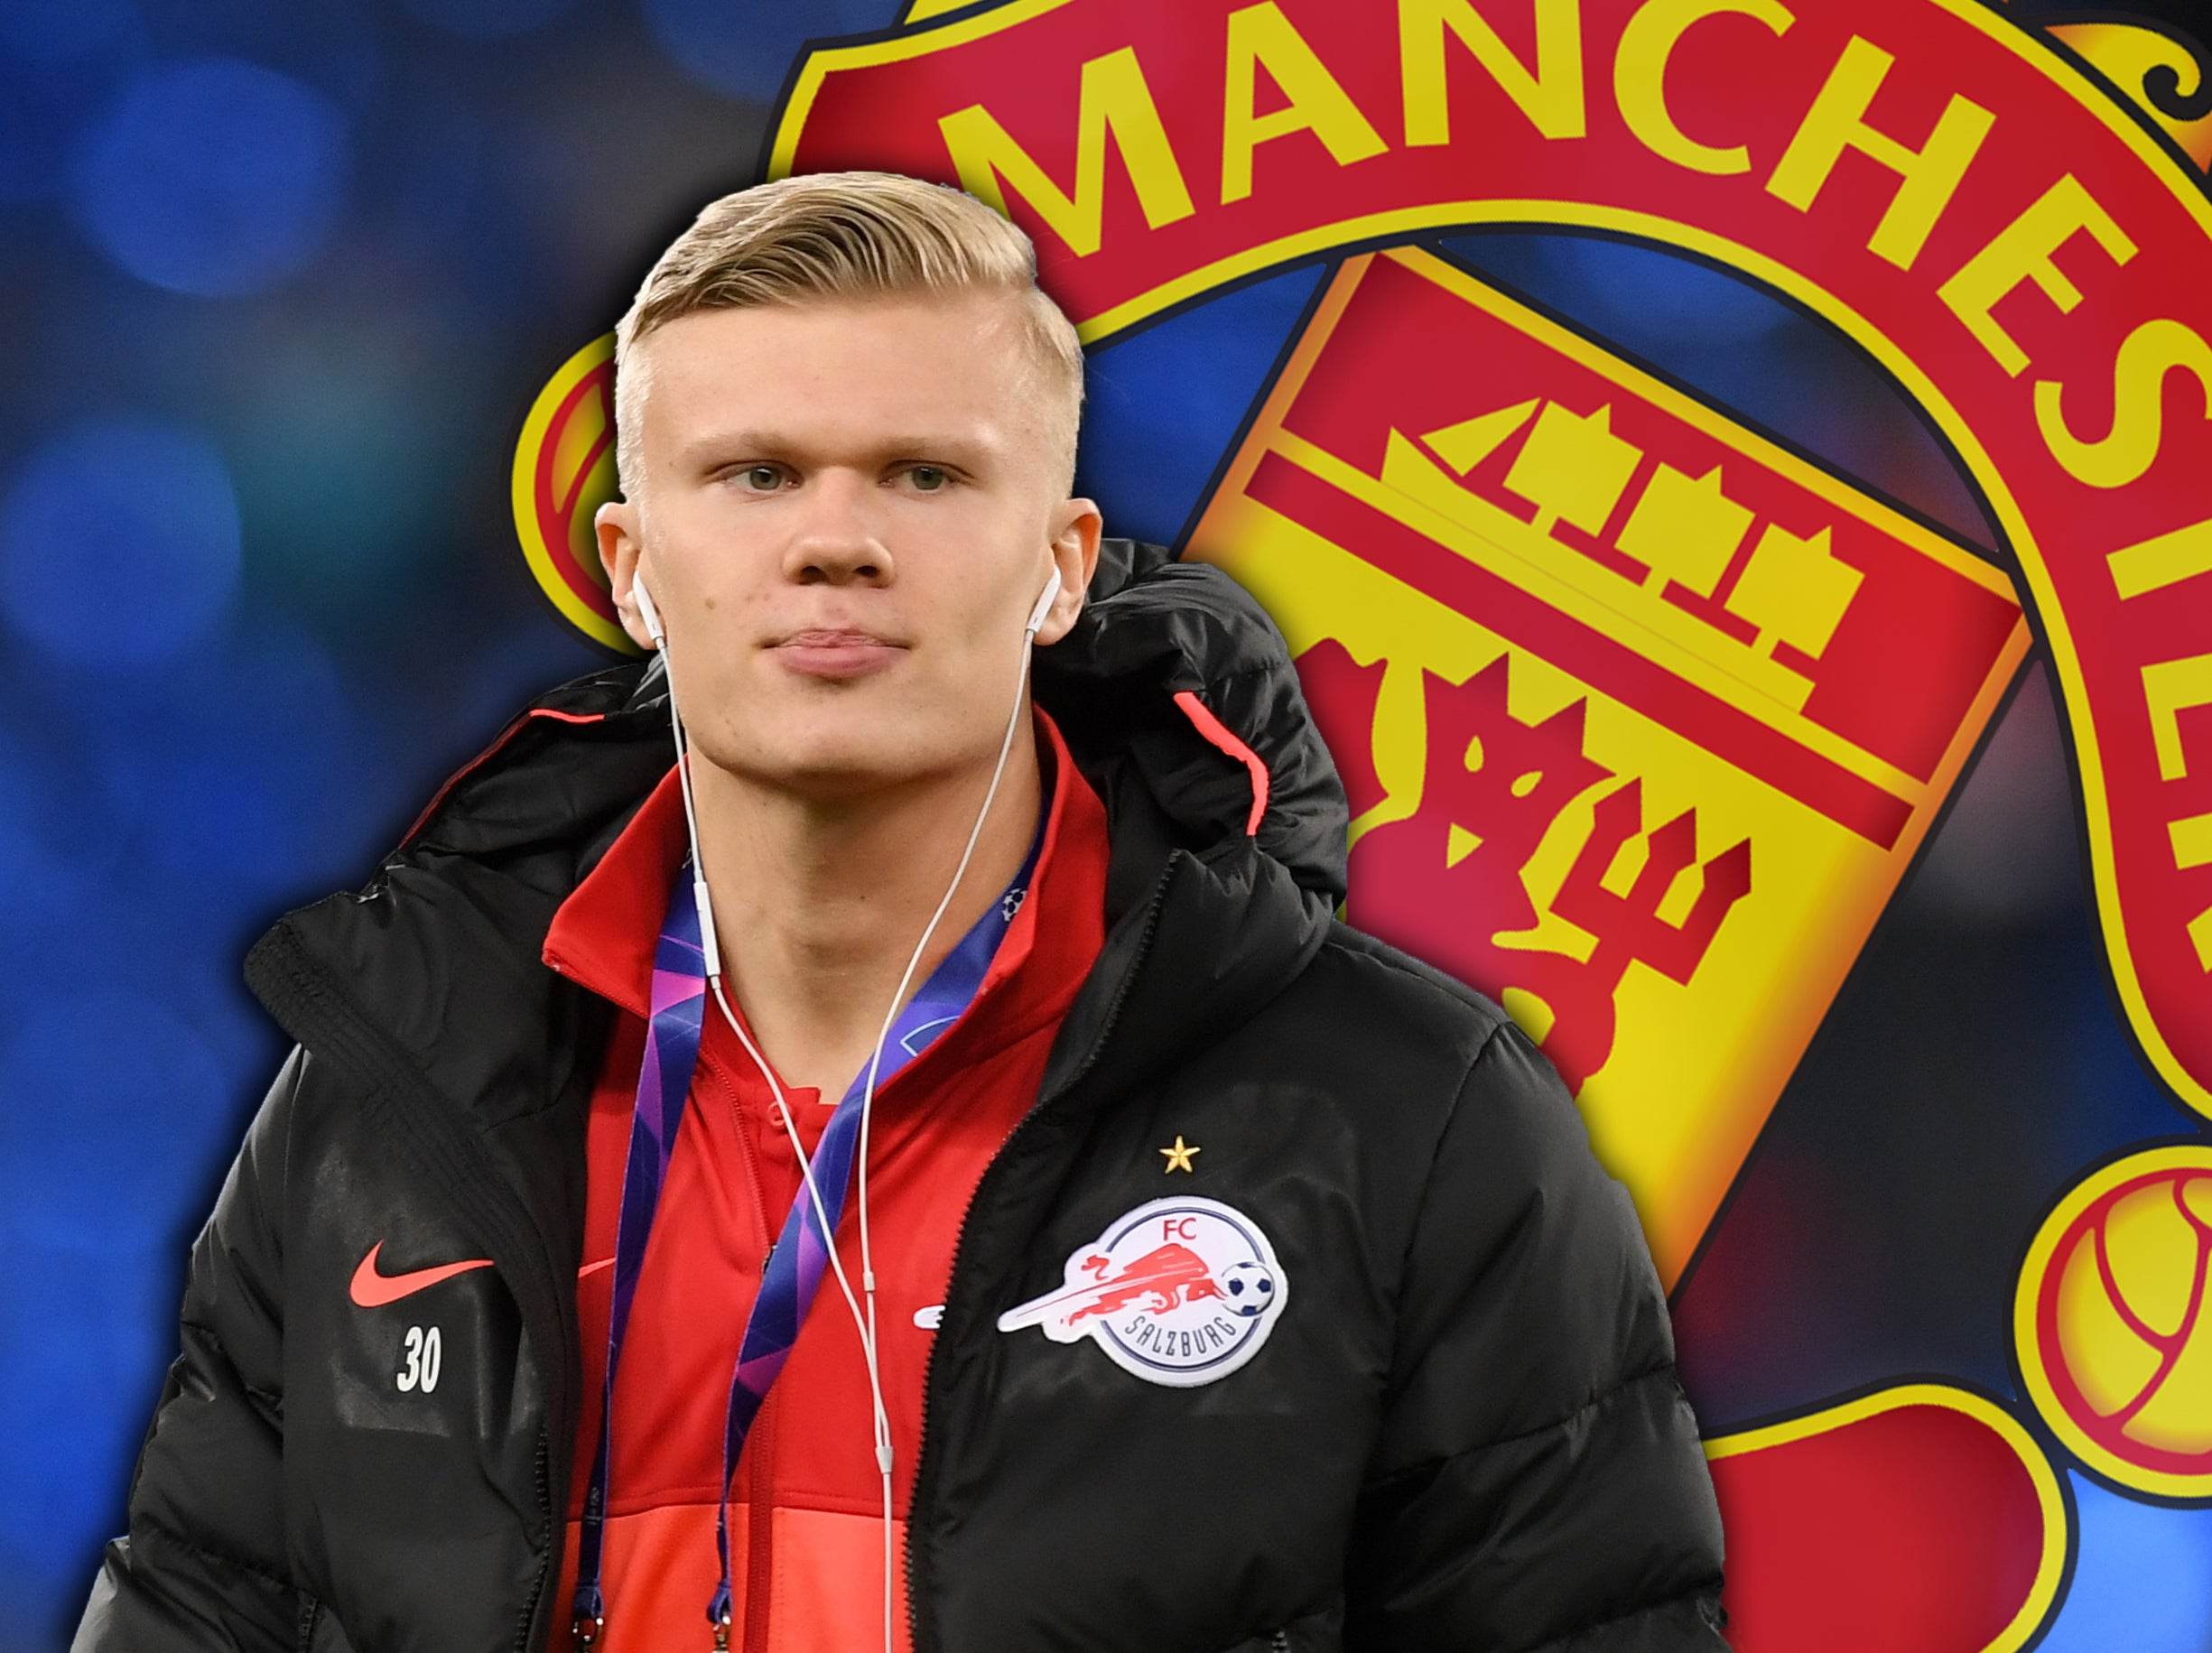 Erling Haaland Manchester United Manager Ole Gunnar Solskjaer Claims Striker On Christmas Holiday The Independent The Independent